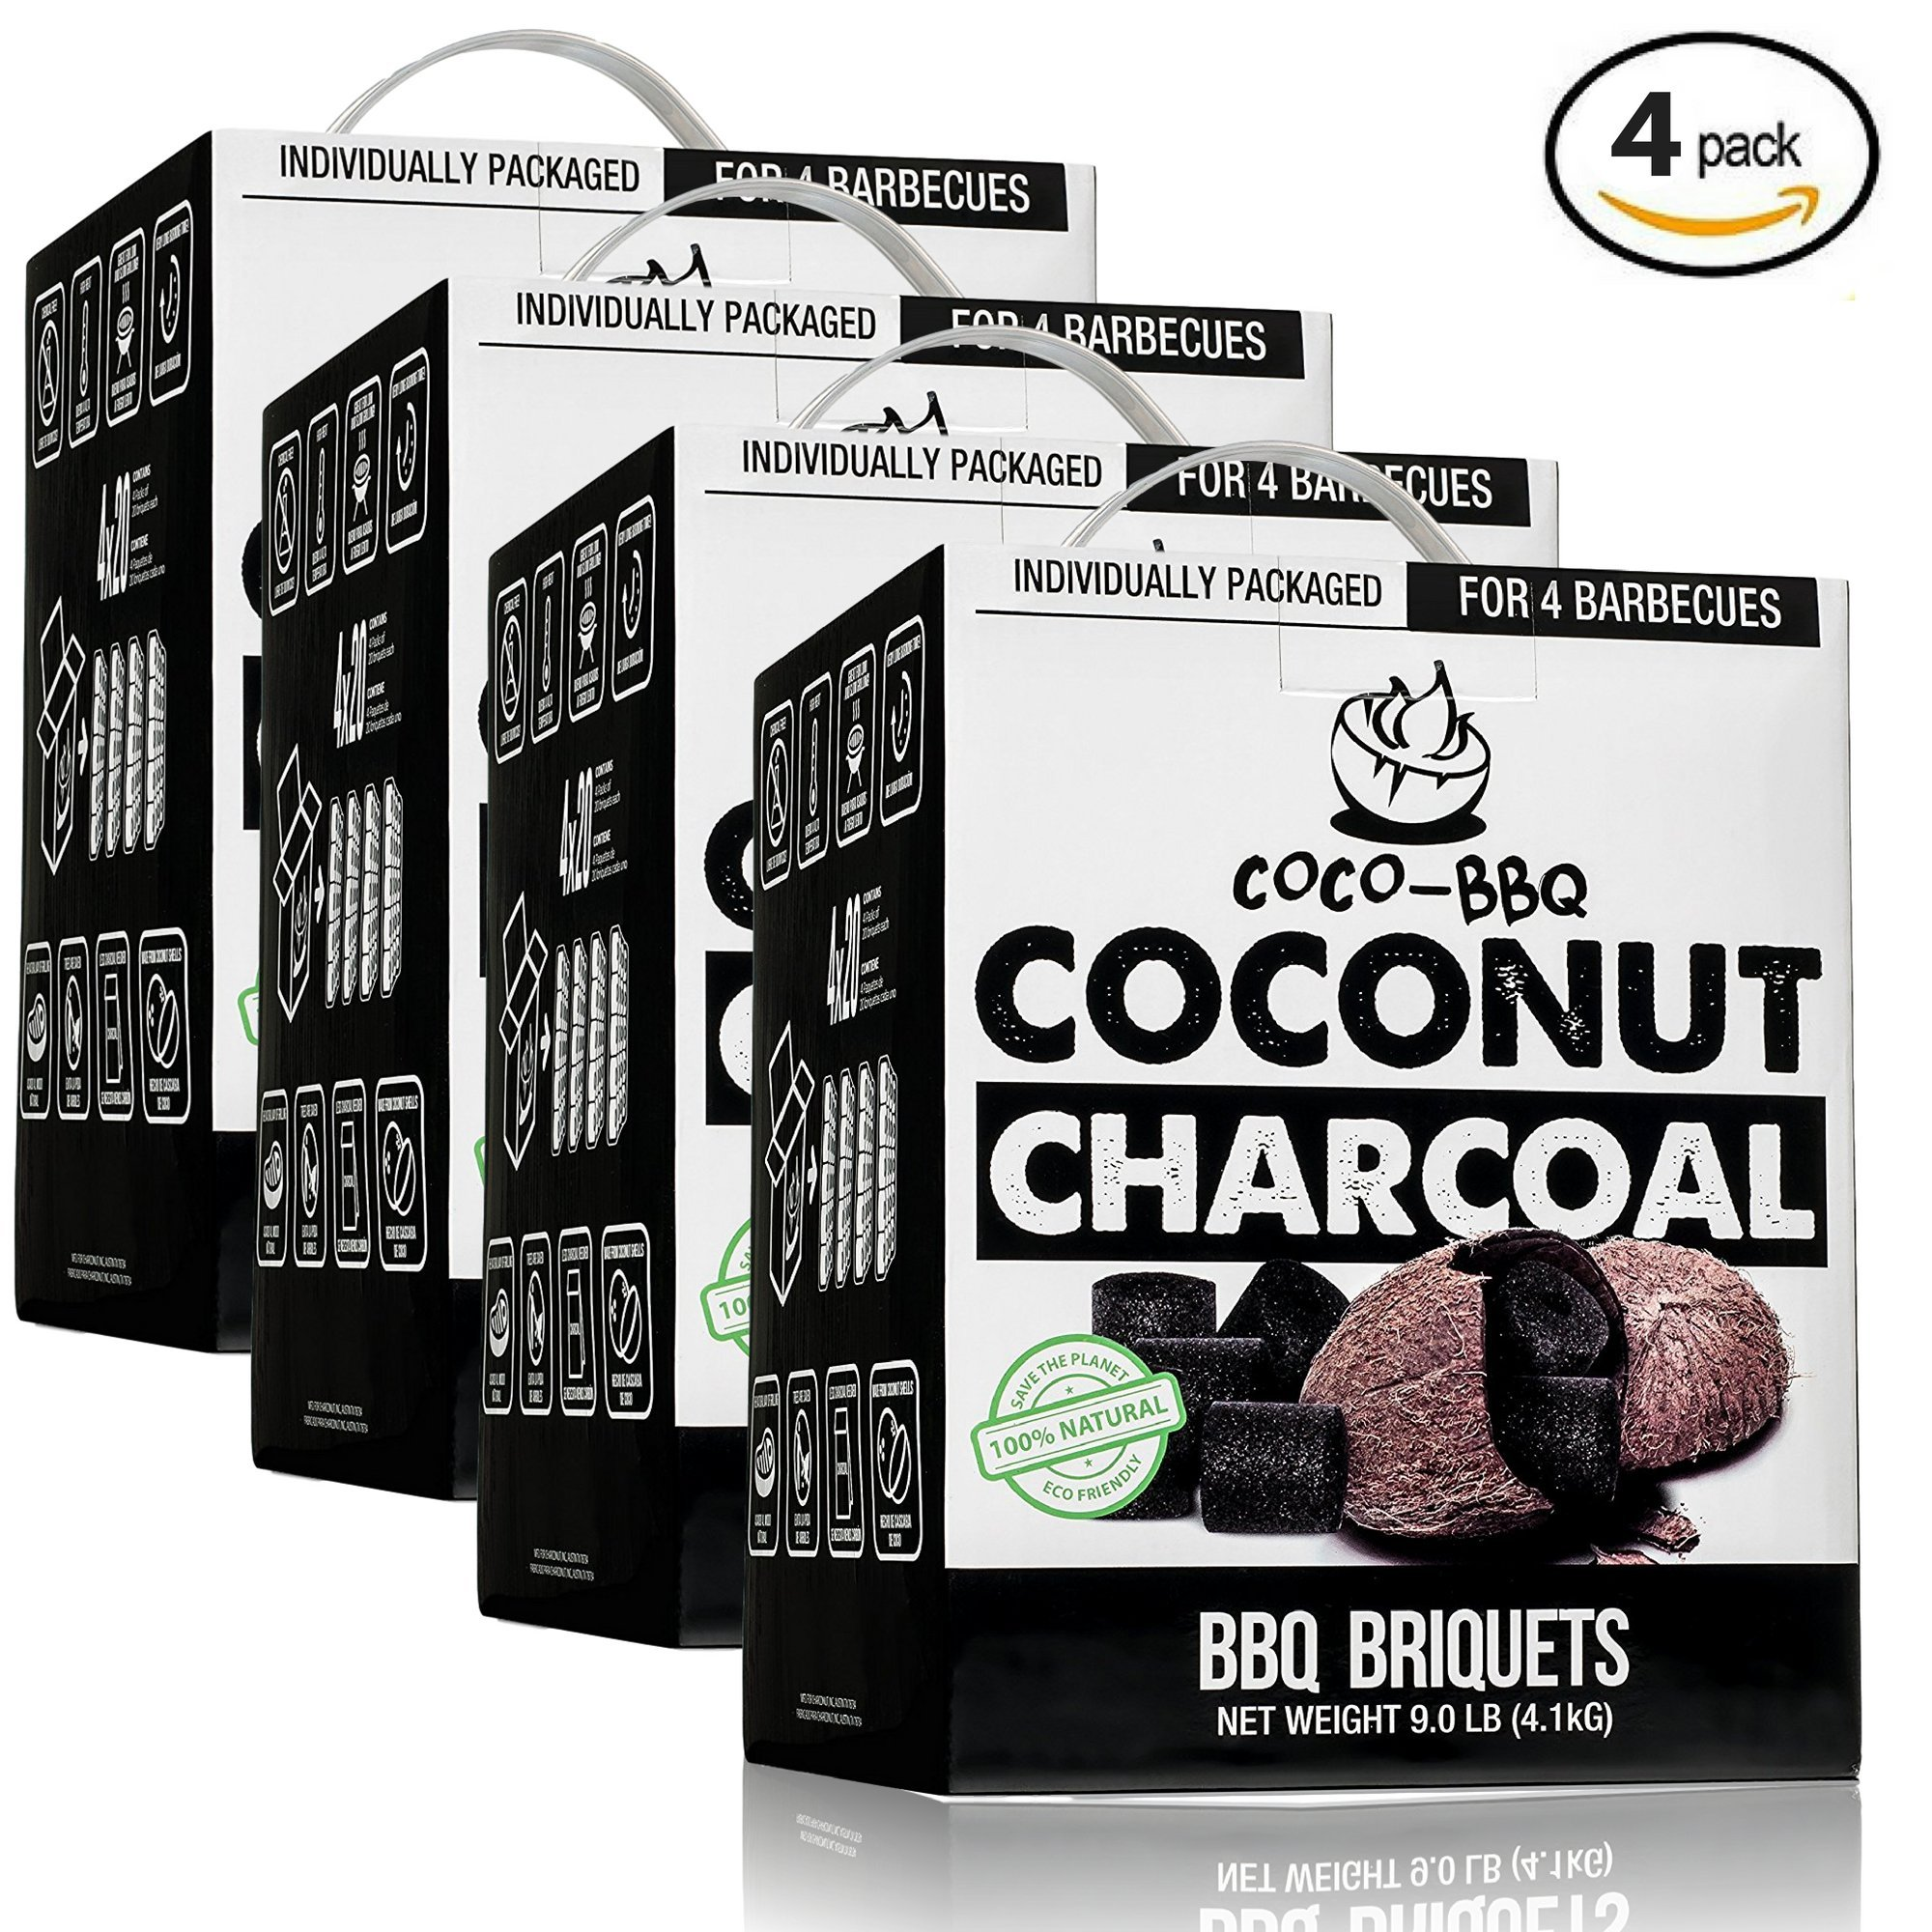 COCO-BBQ Eco-Friendly Barbecue (SET OF 4) Charcoal Made from Coconut Shells for Low and Slow Grilling by COCO-BBQ